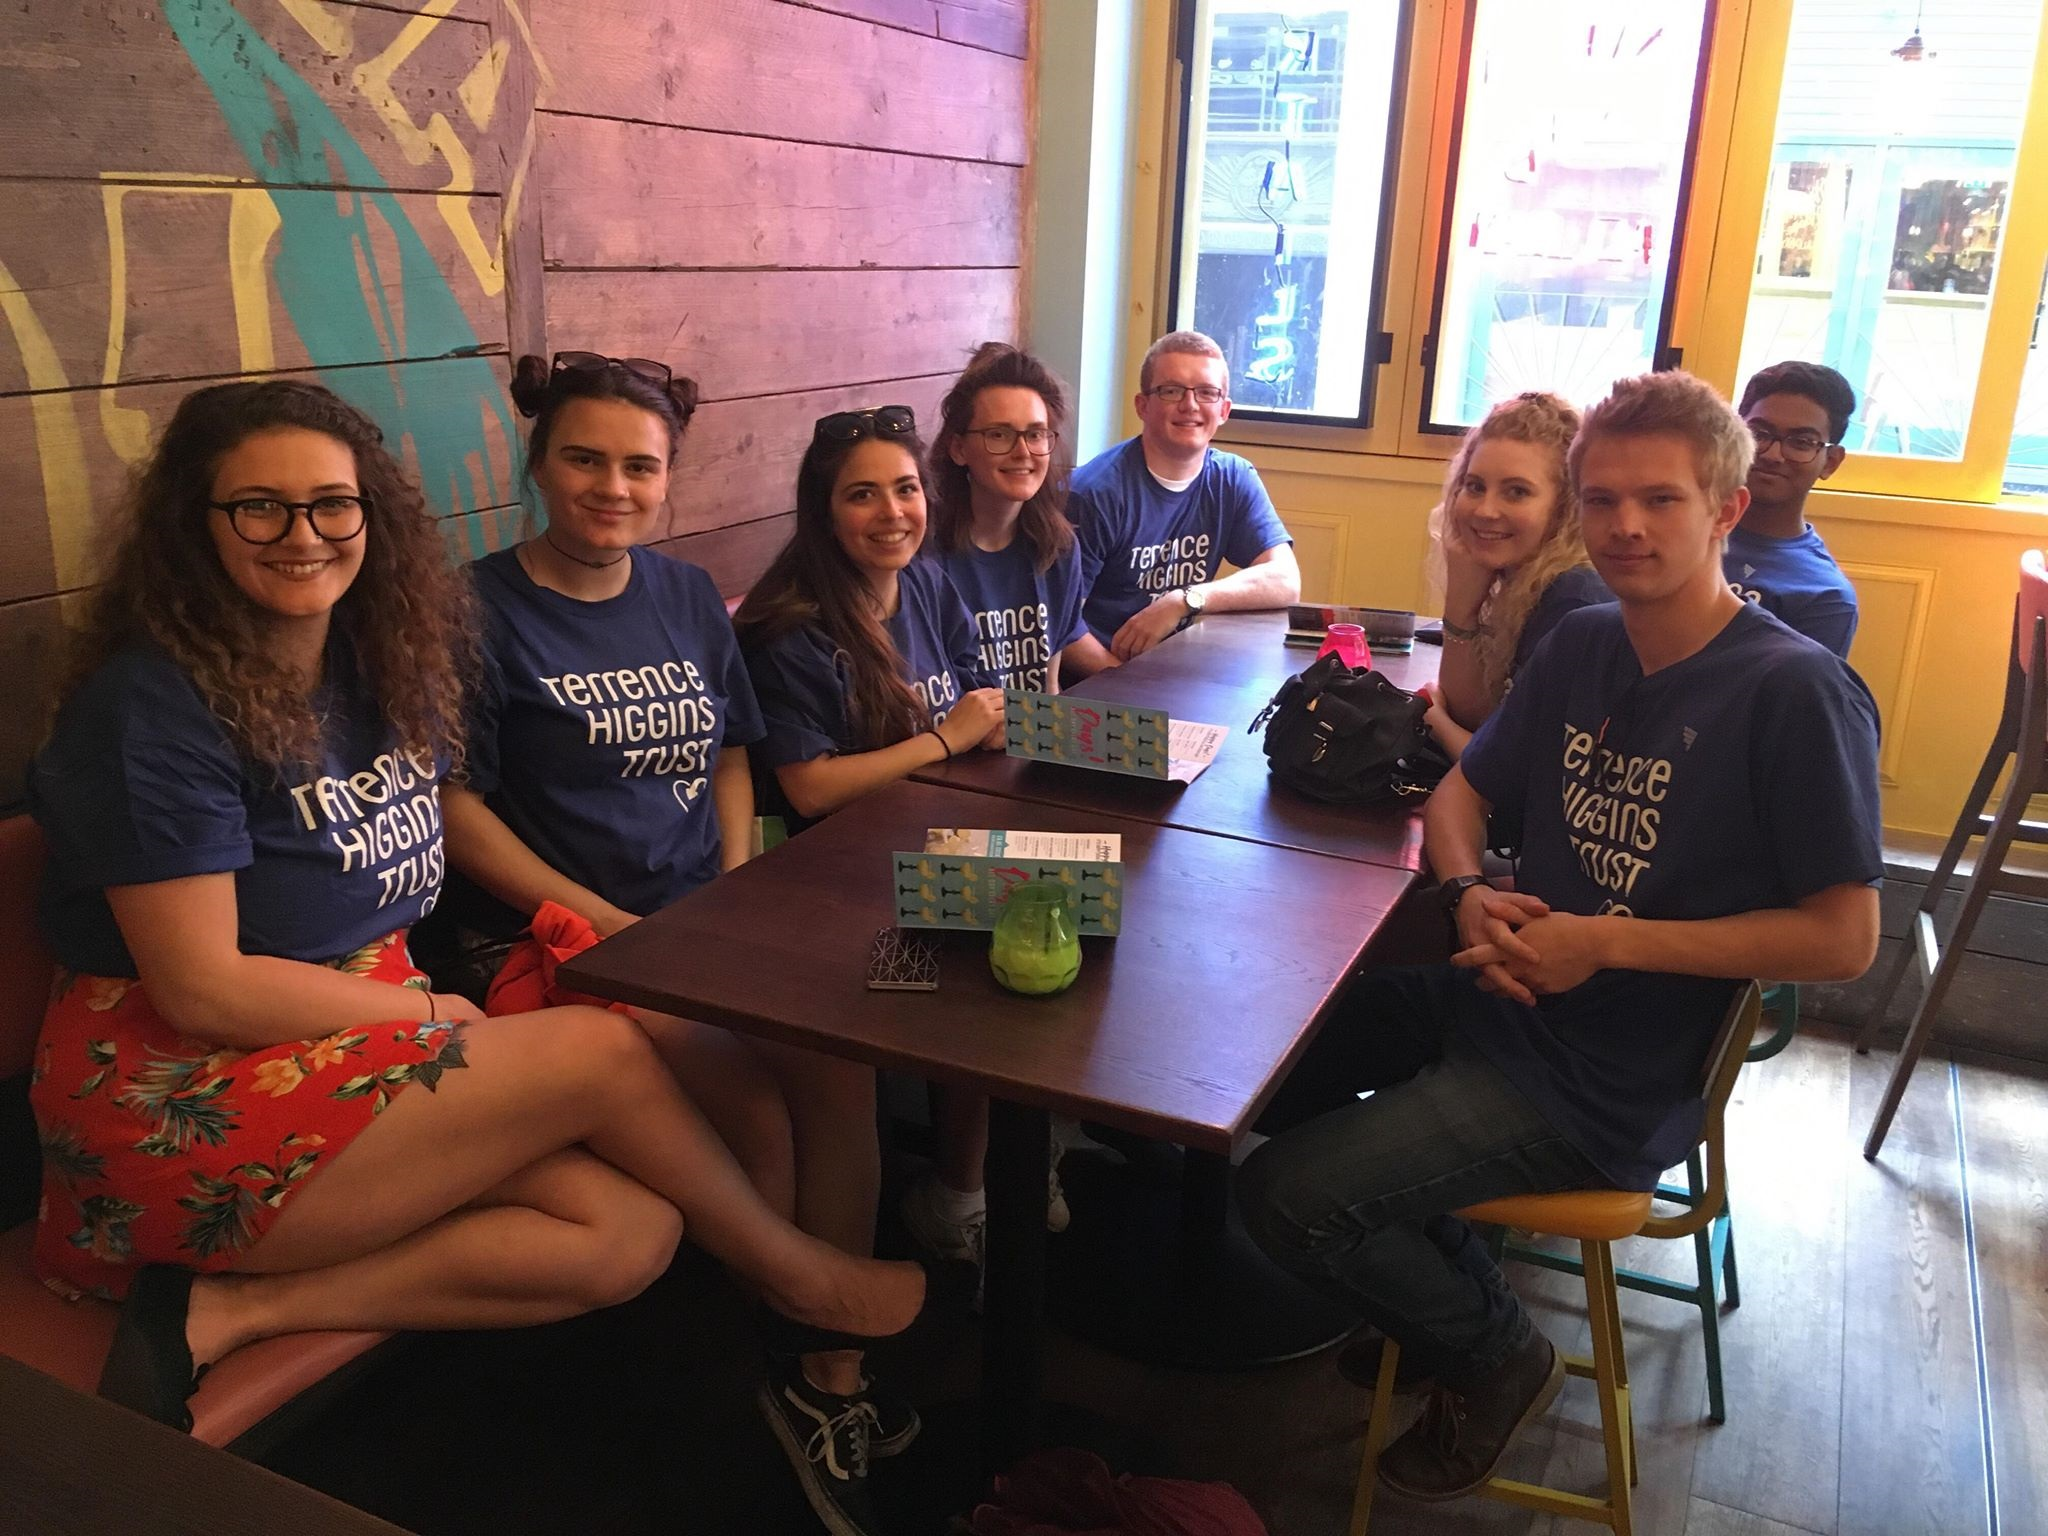 Students wearing Terrence Higgins Trust t-shirts